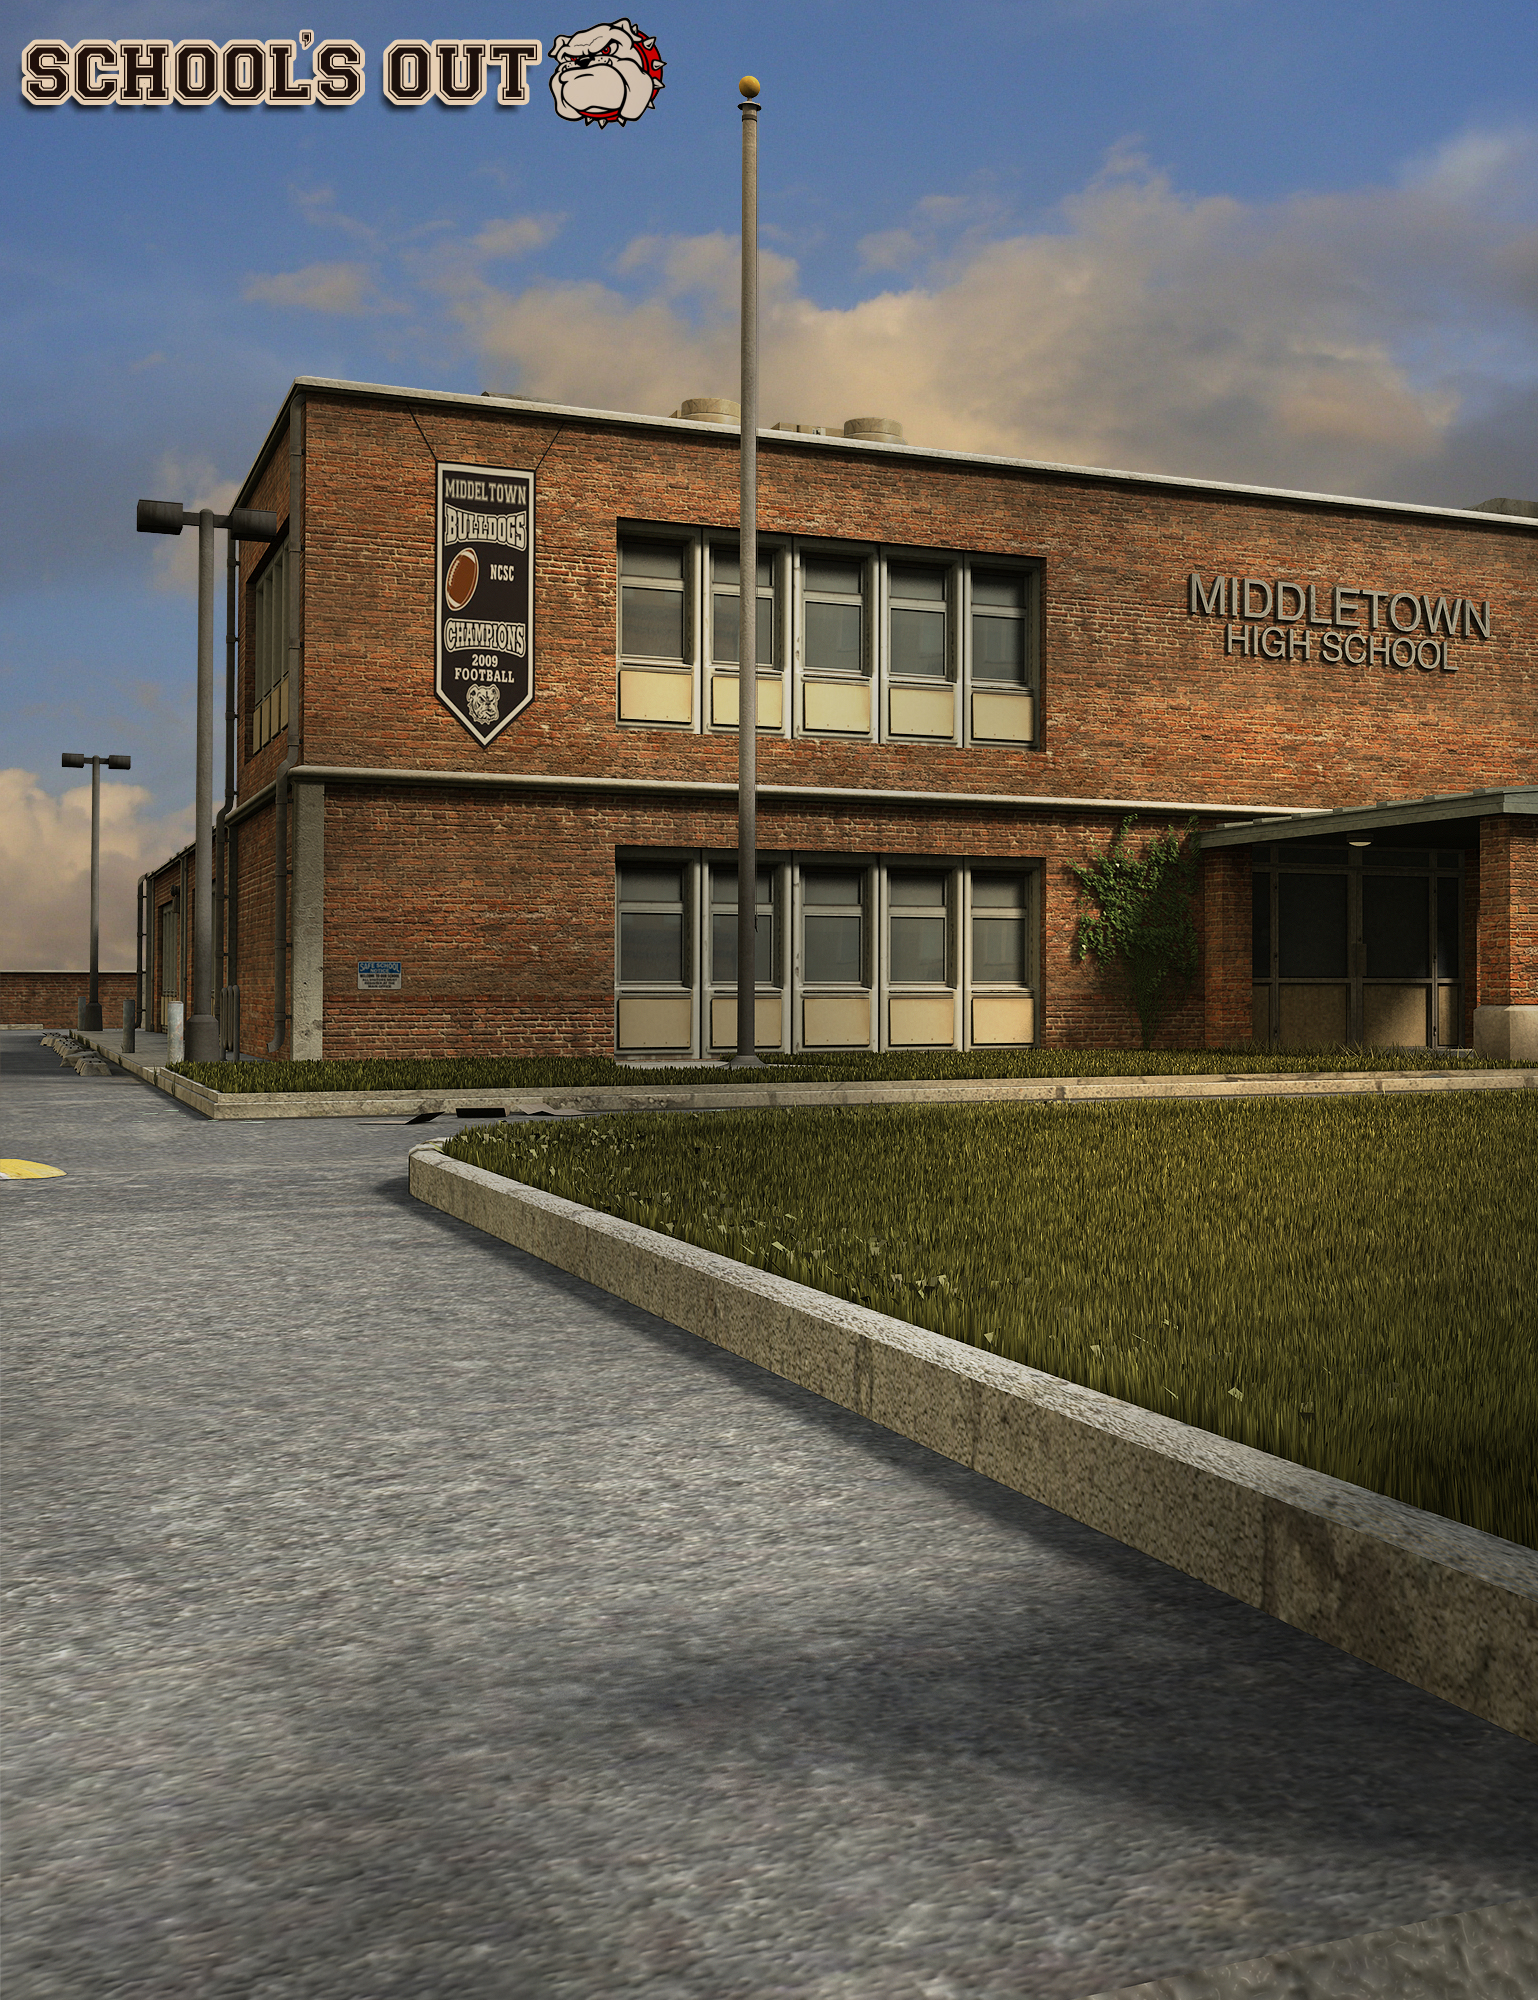 School's Out by: The AntFarm, 3D Models by Daz 3D